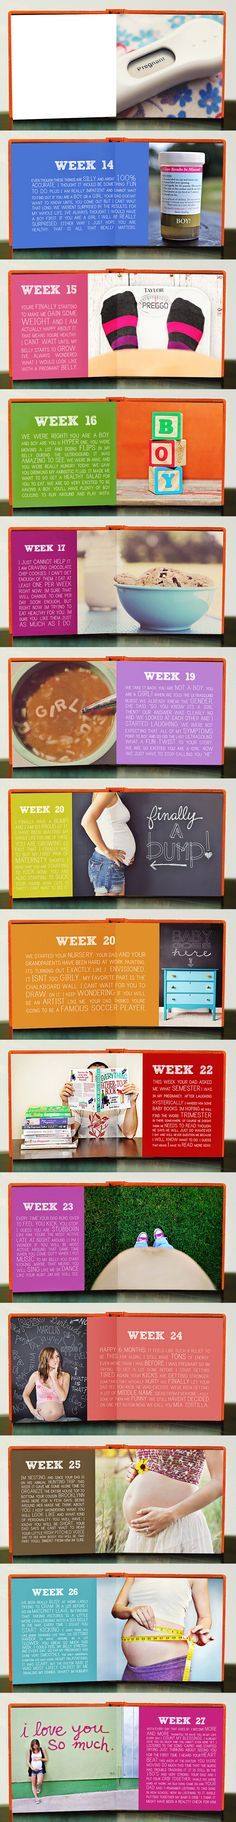 make a week-by-week photo book for the baby!